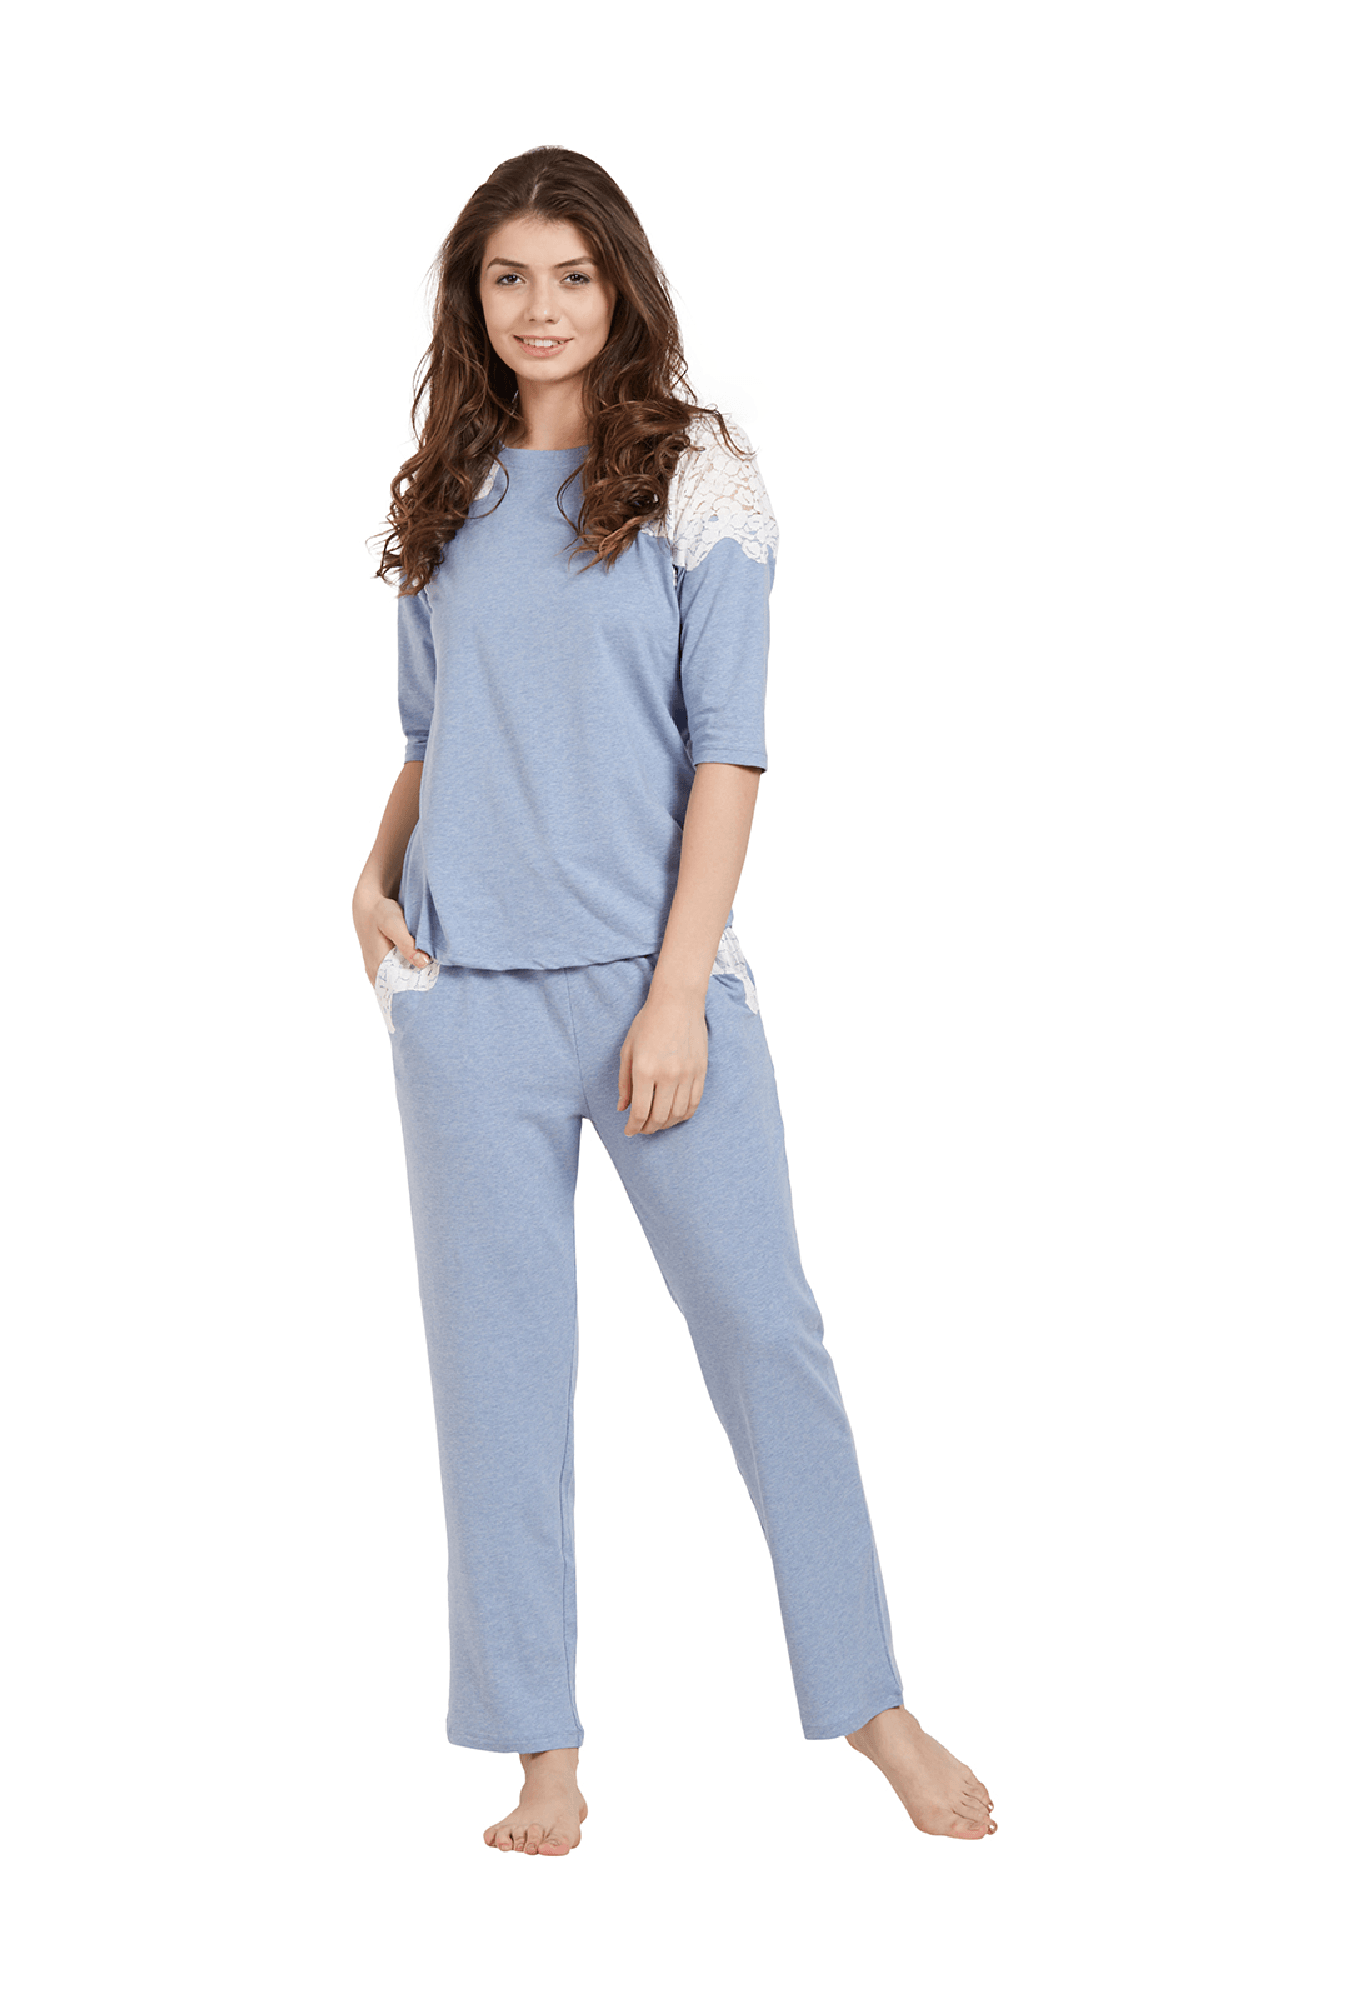 Pyjama Soie Buy Soie Blue Cotton Top With Pyjamas For Women Online Tata Cliq